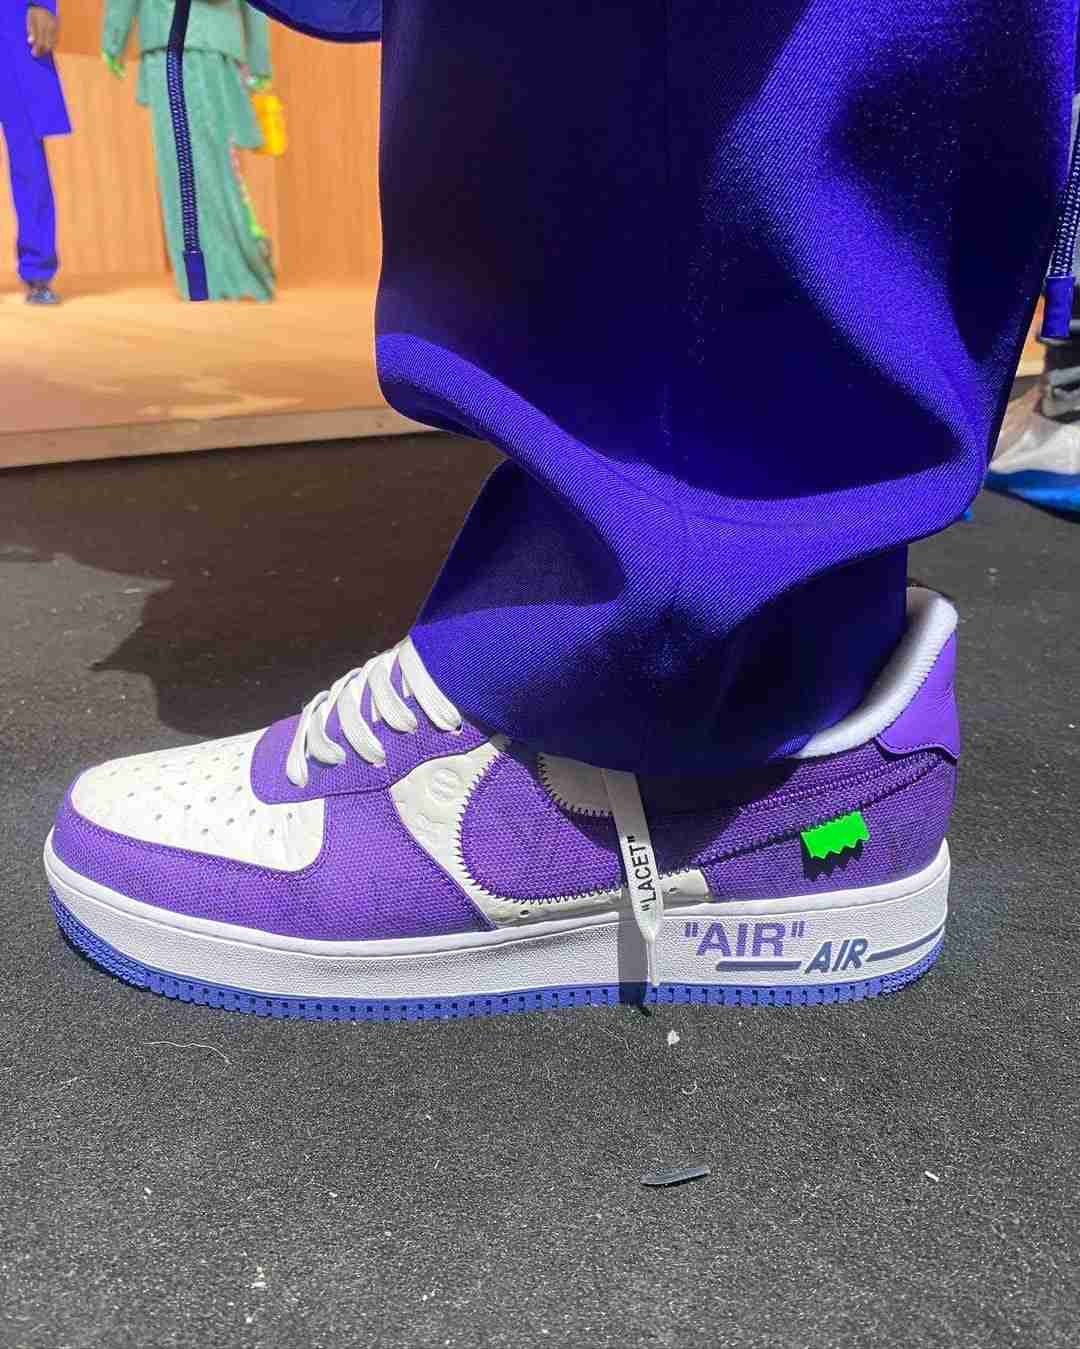 louis vuitton nike air force 1 ss22 purple sideview